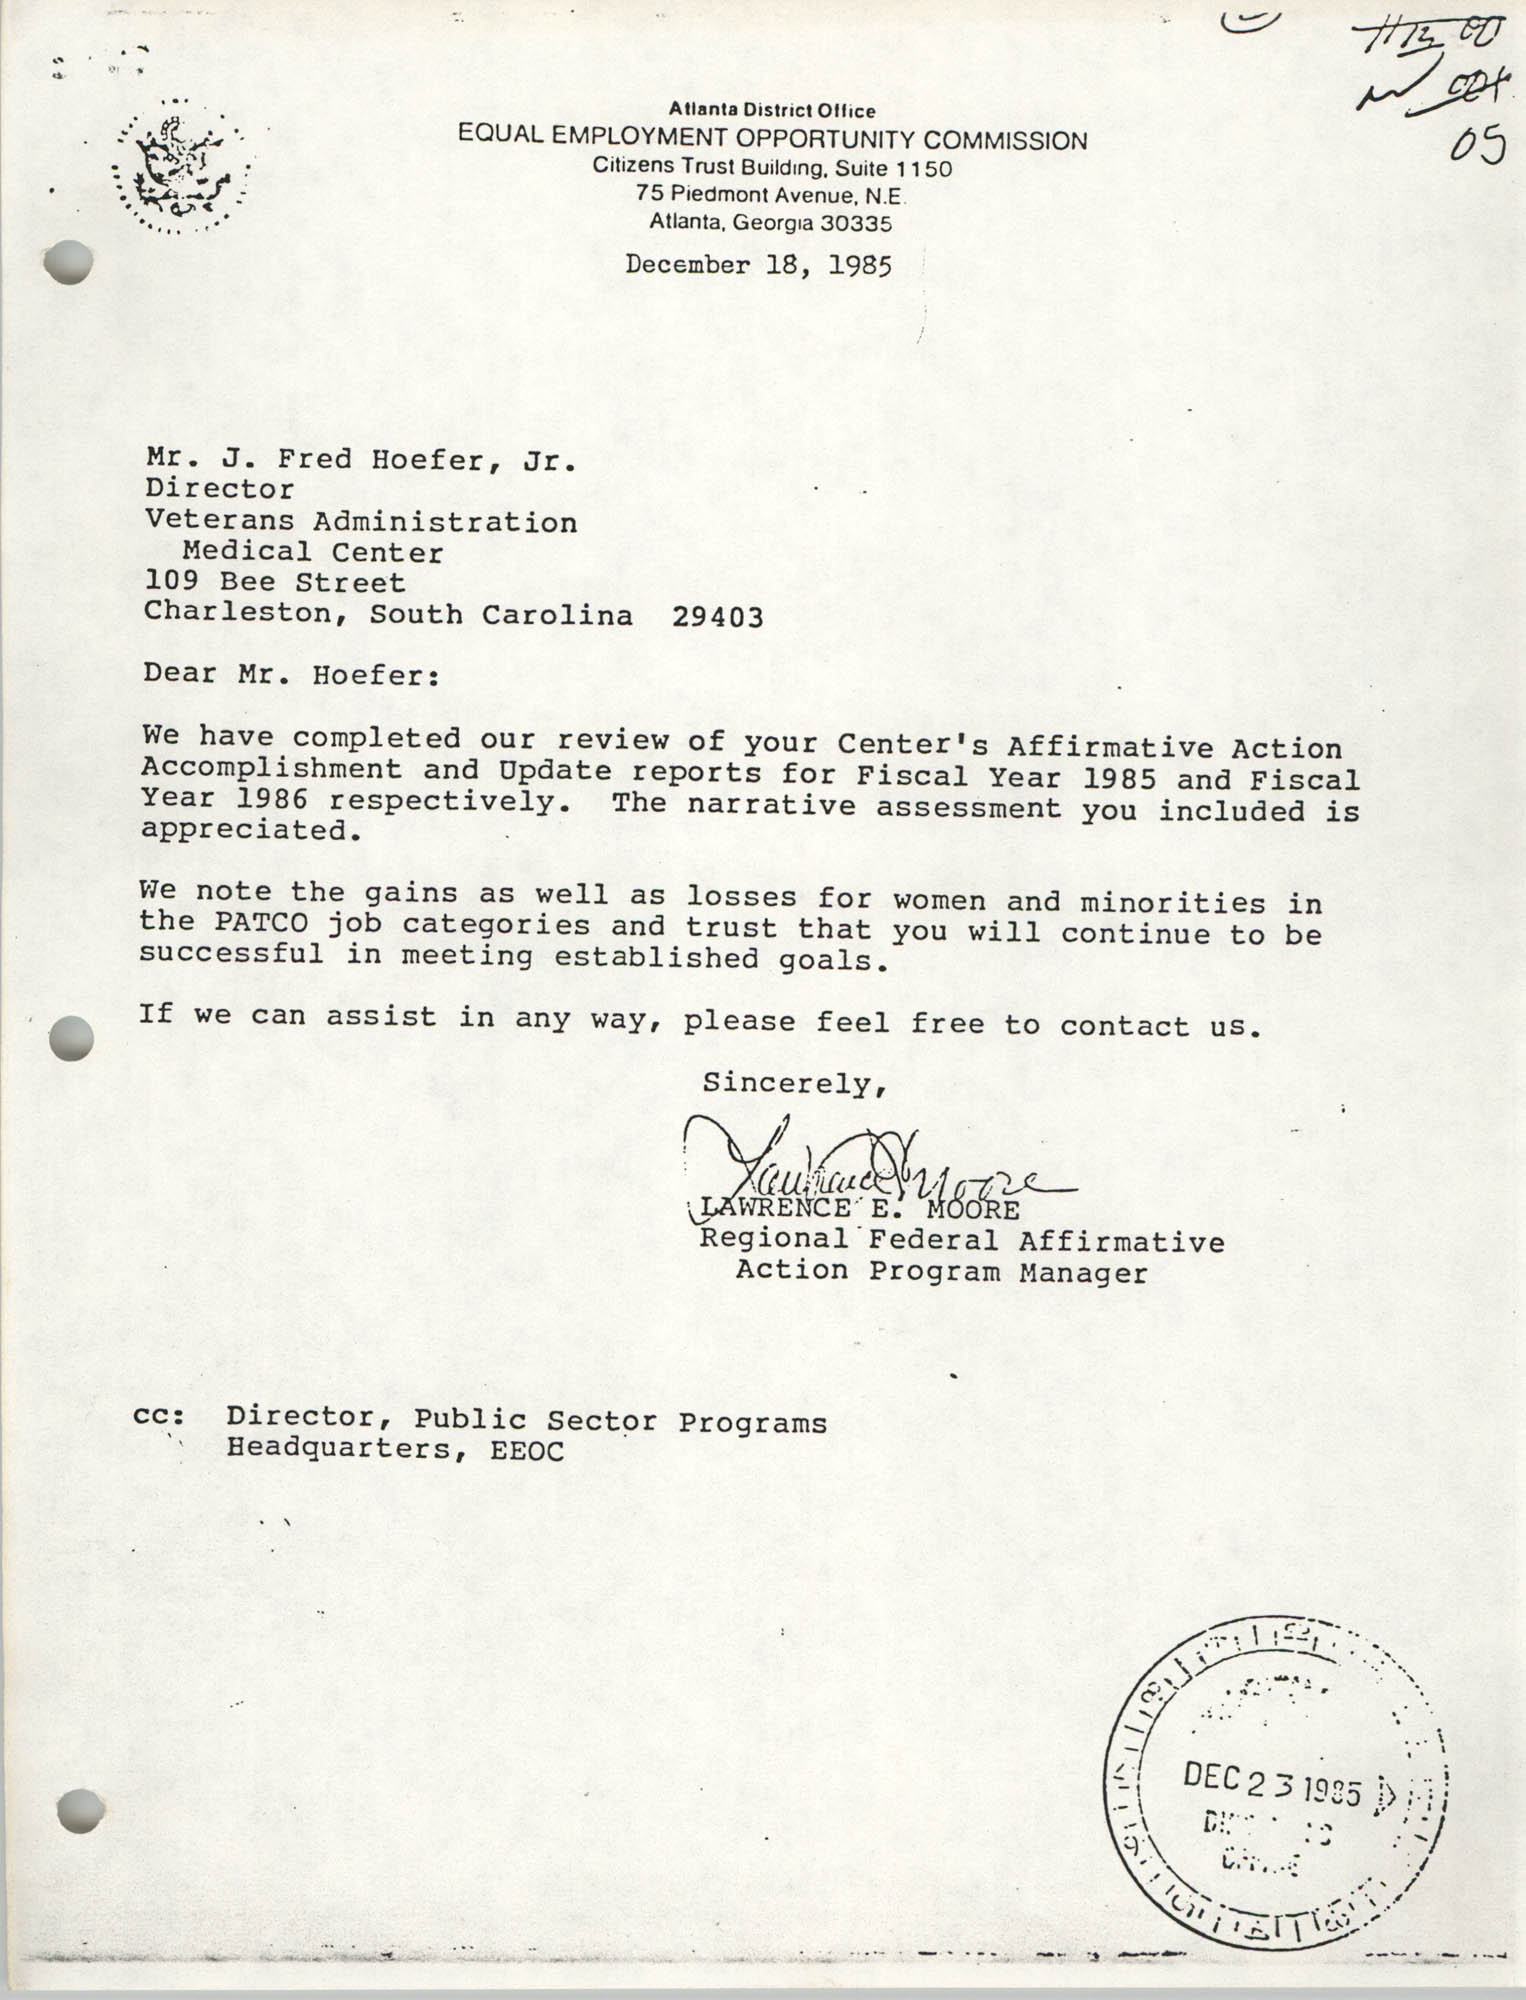 Letter from Lawrence E. Moore to J. Fred Hoefer Jr., December 13, 1985